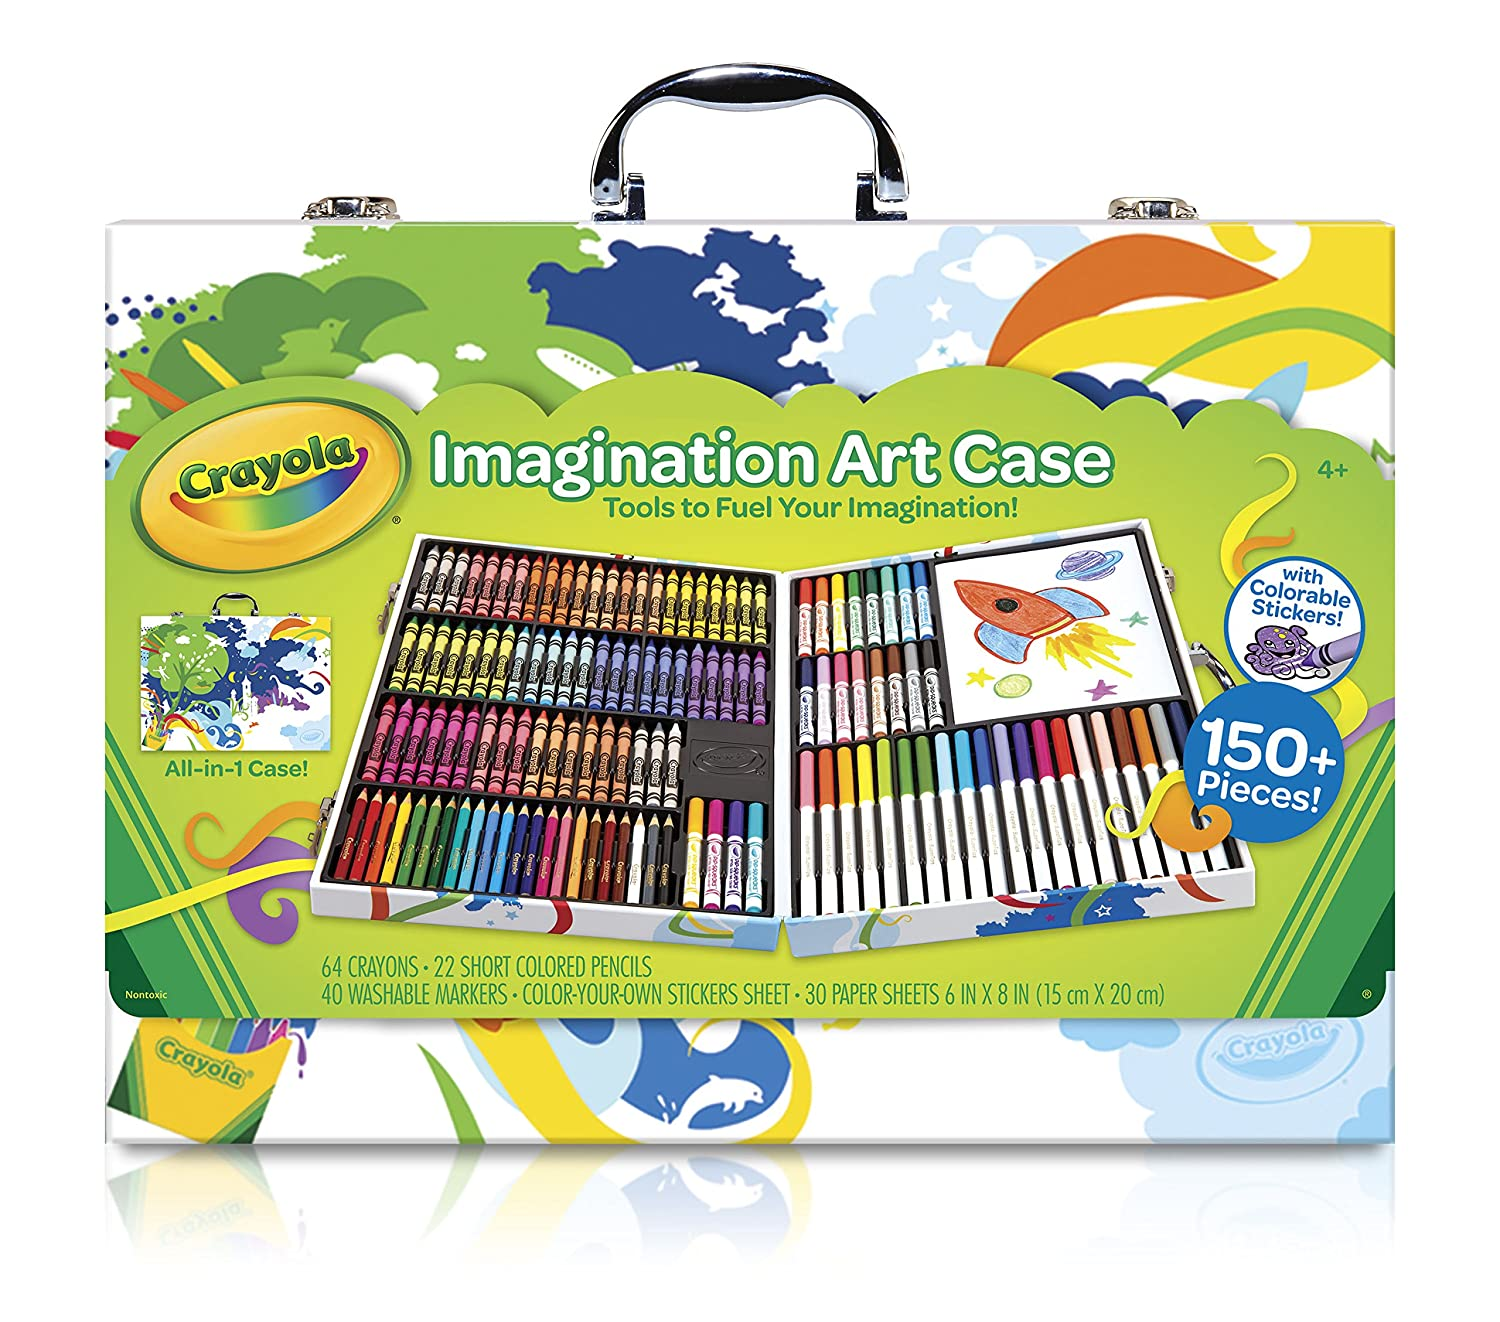 Amazon.com: Crayola Imagination Art Case (Amazon Exclusive): Toys ...